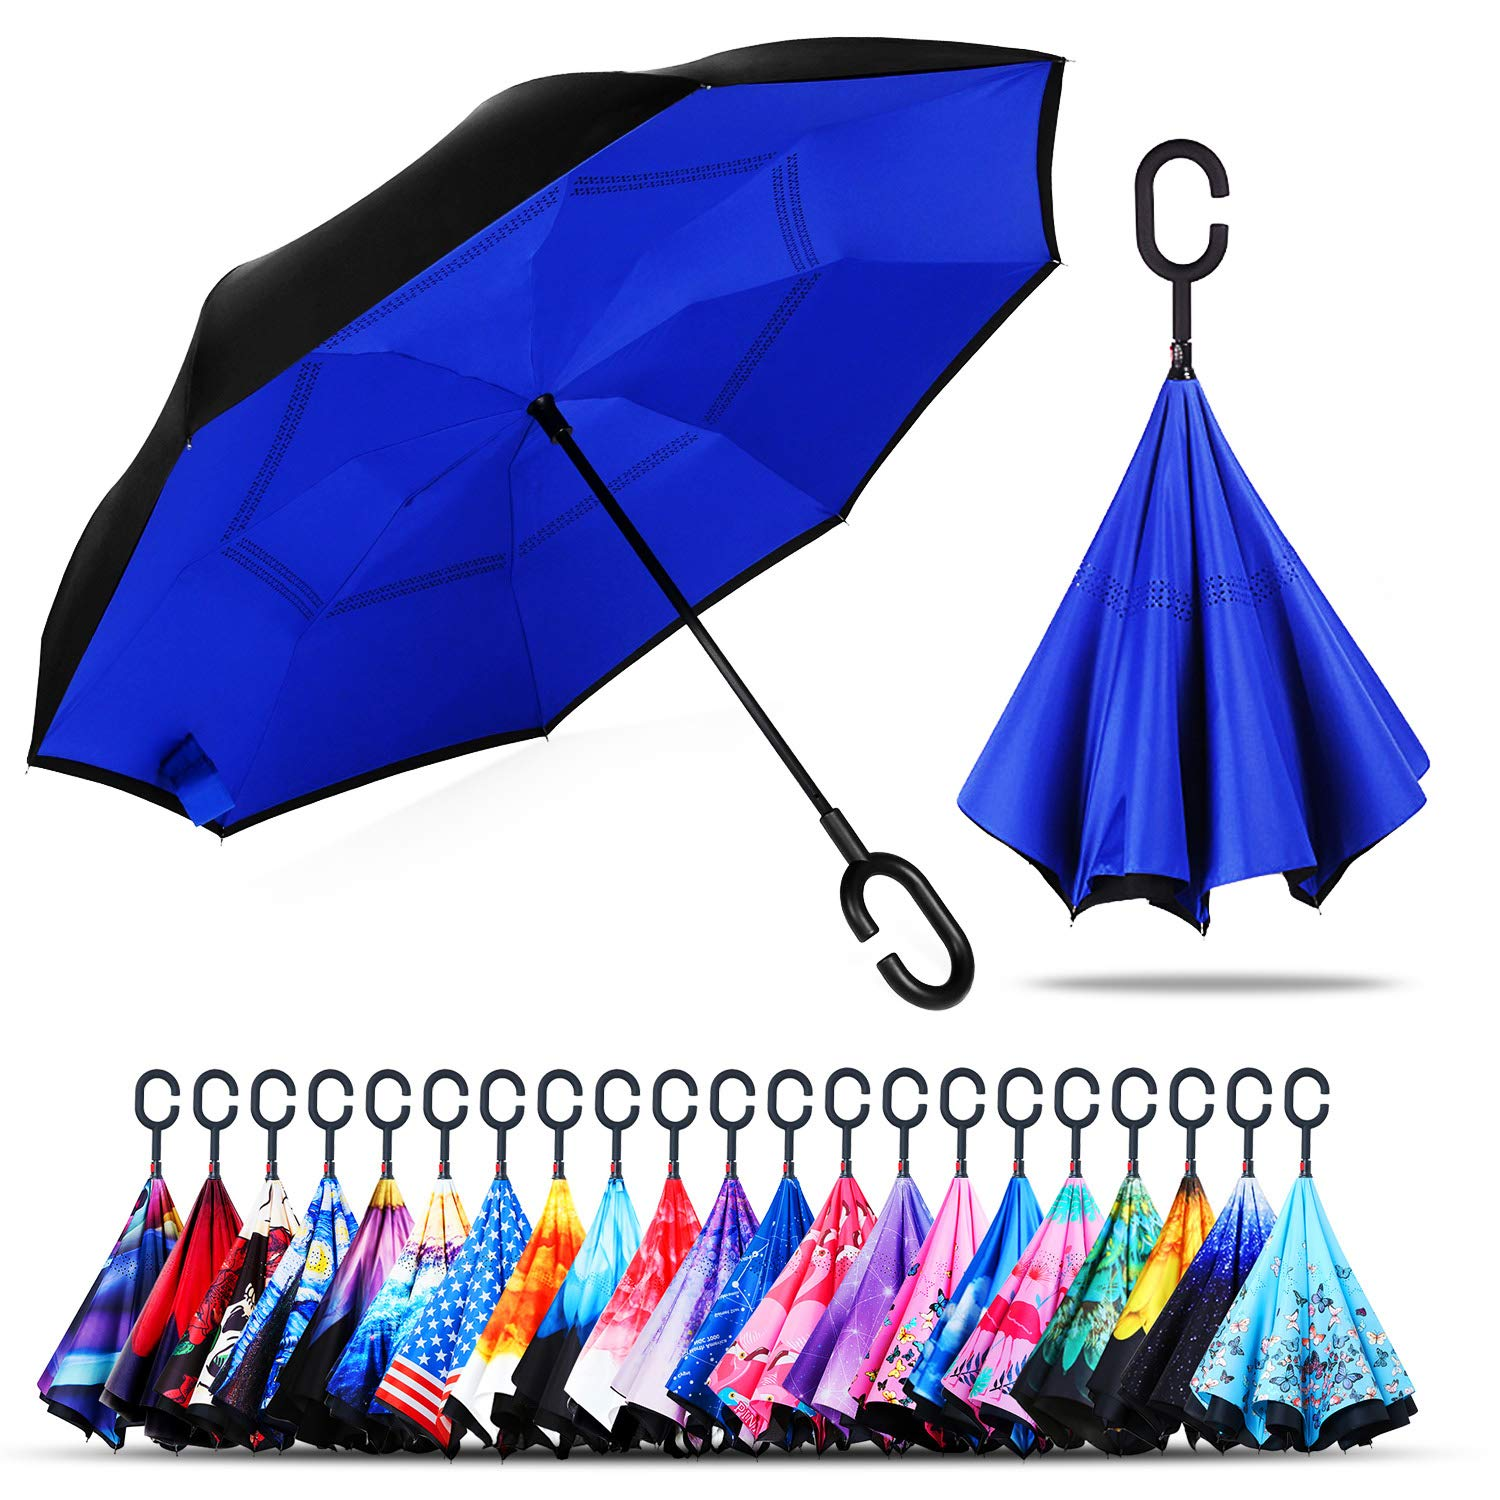 Owen Kyne Windproof Double Layer Folding Inverted Umbrella, Self Stand Upside-Down Rain Protection Car Reverse Umbrellas with C-Shaped Handle (Sapphire Blue) by Owen Kyne